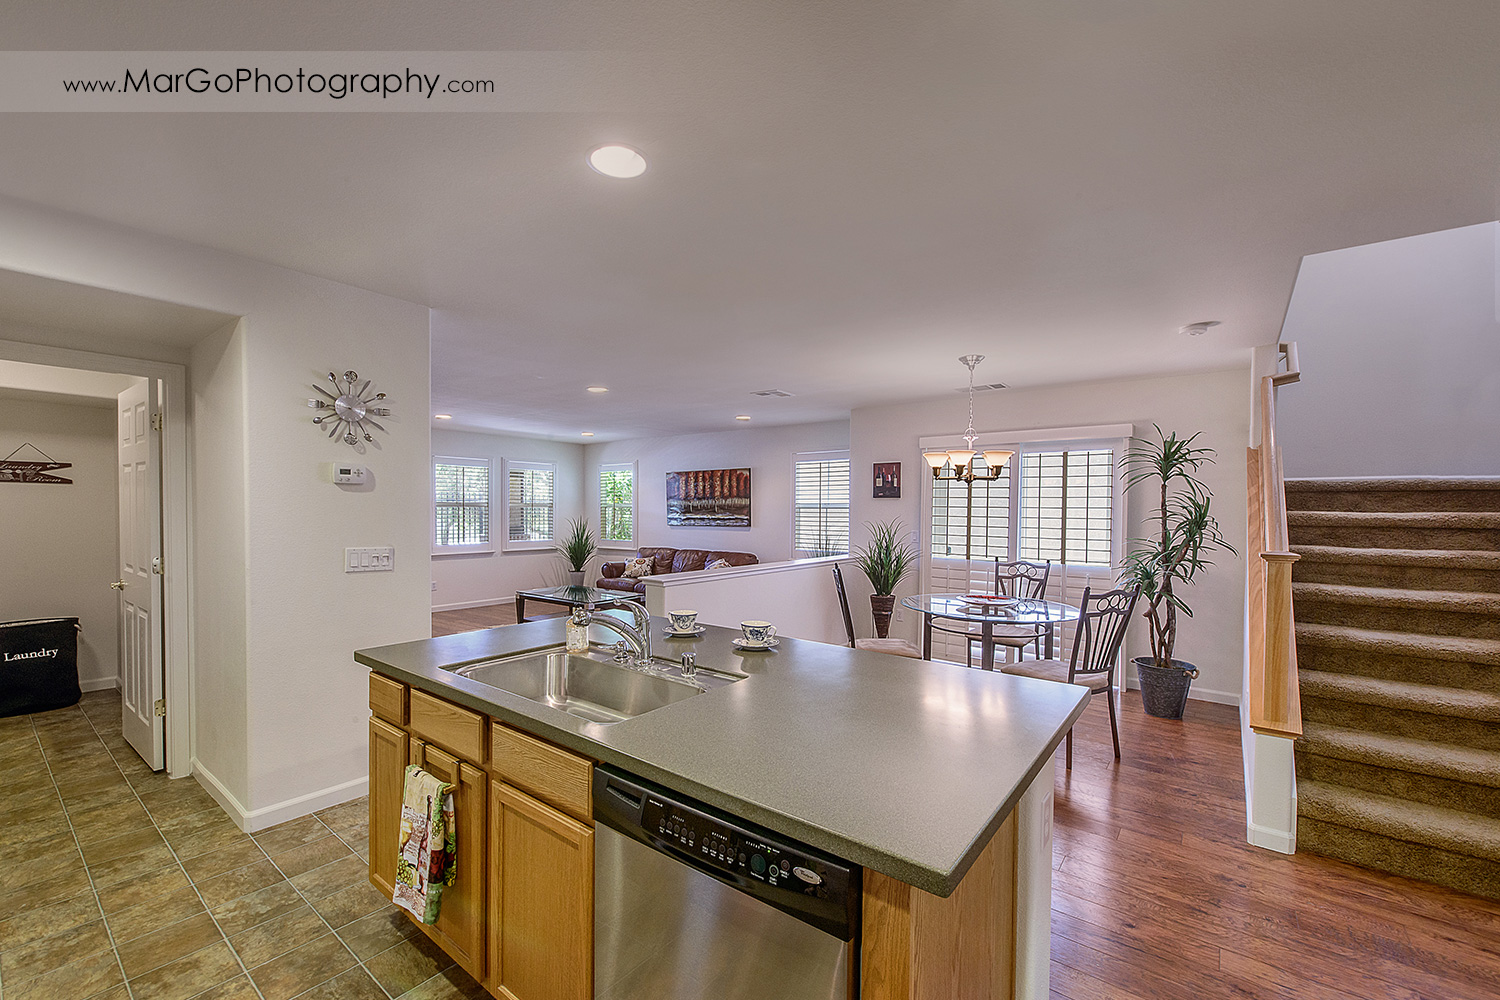 Pittsburd house dining room seen from kitchen - real estate photography